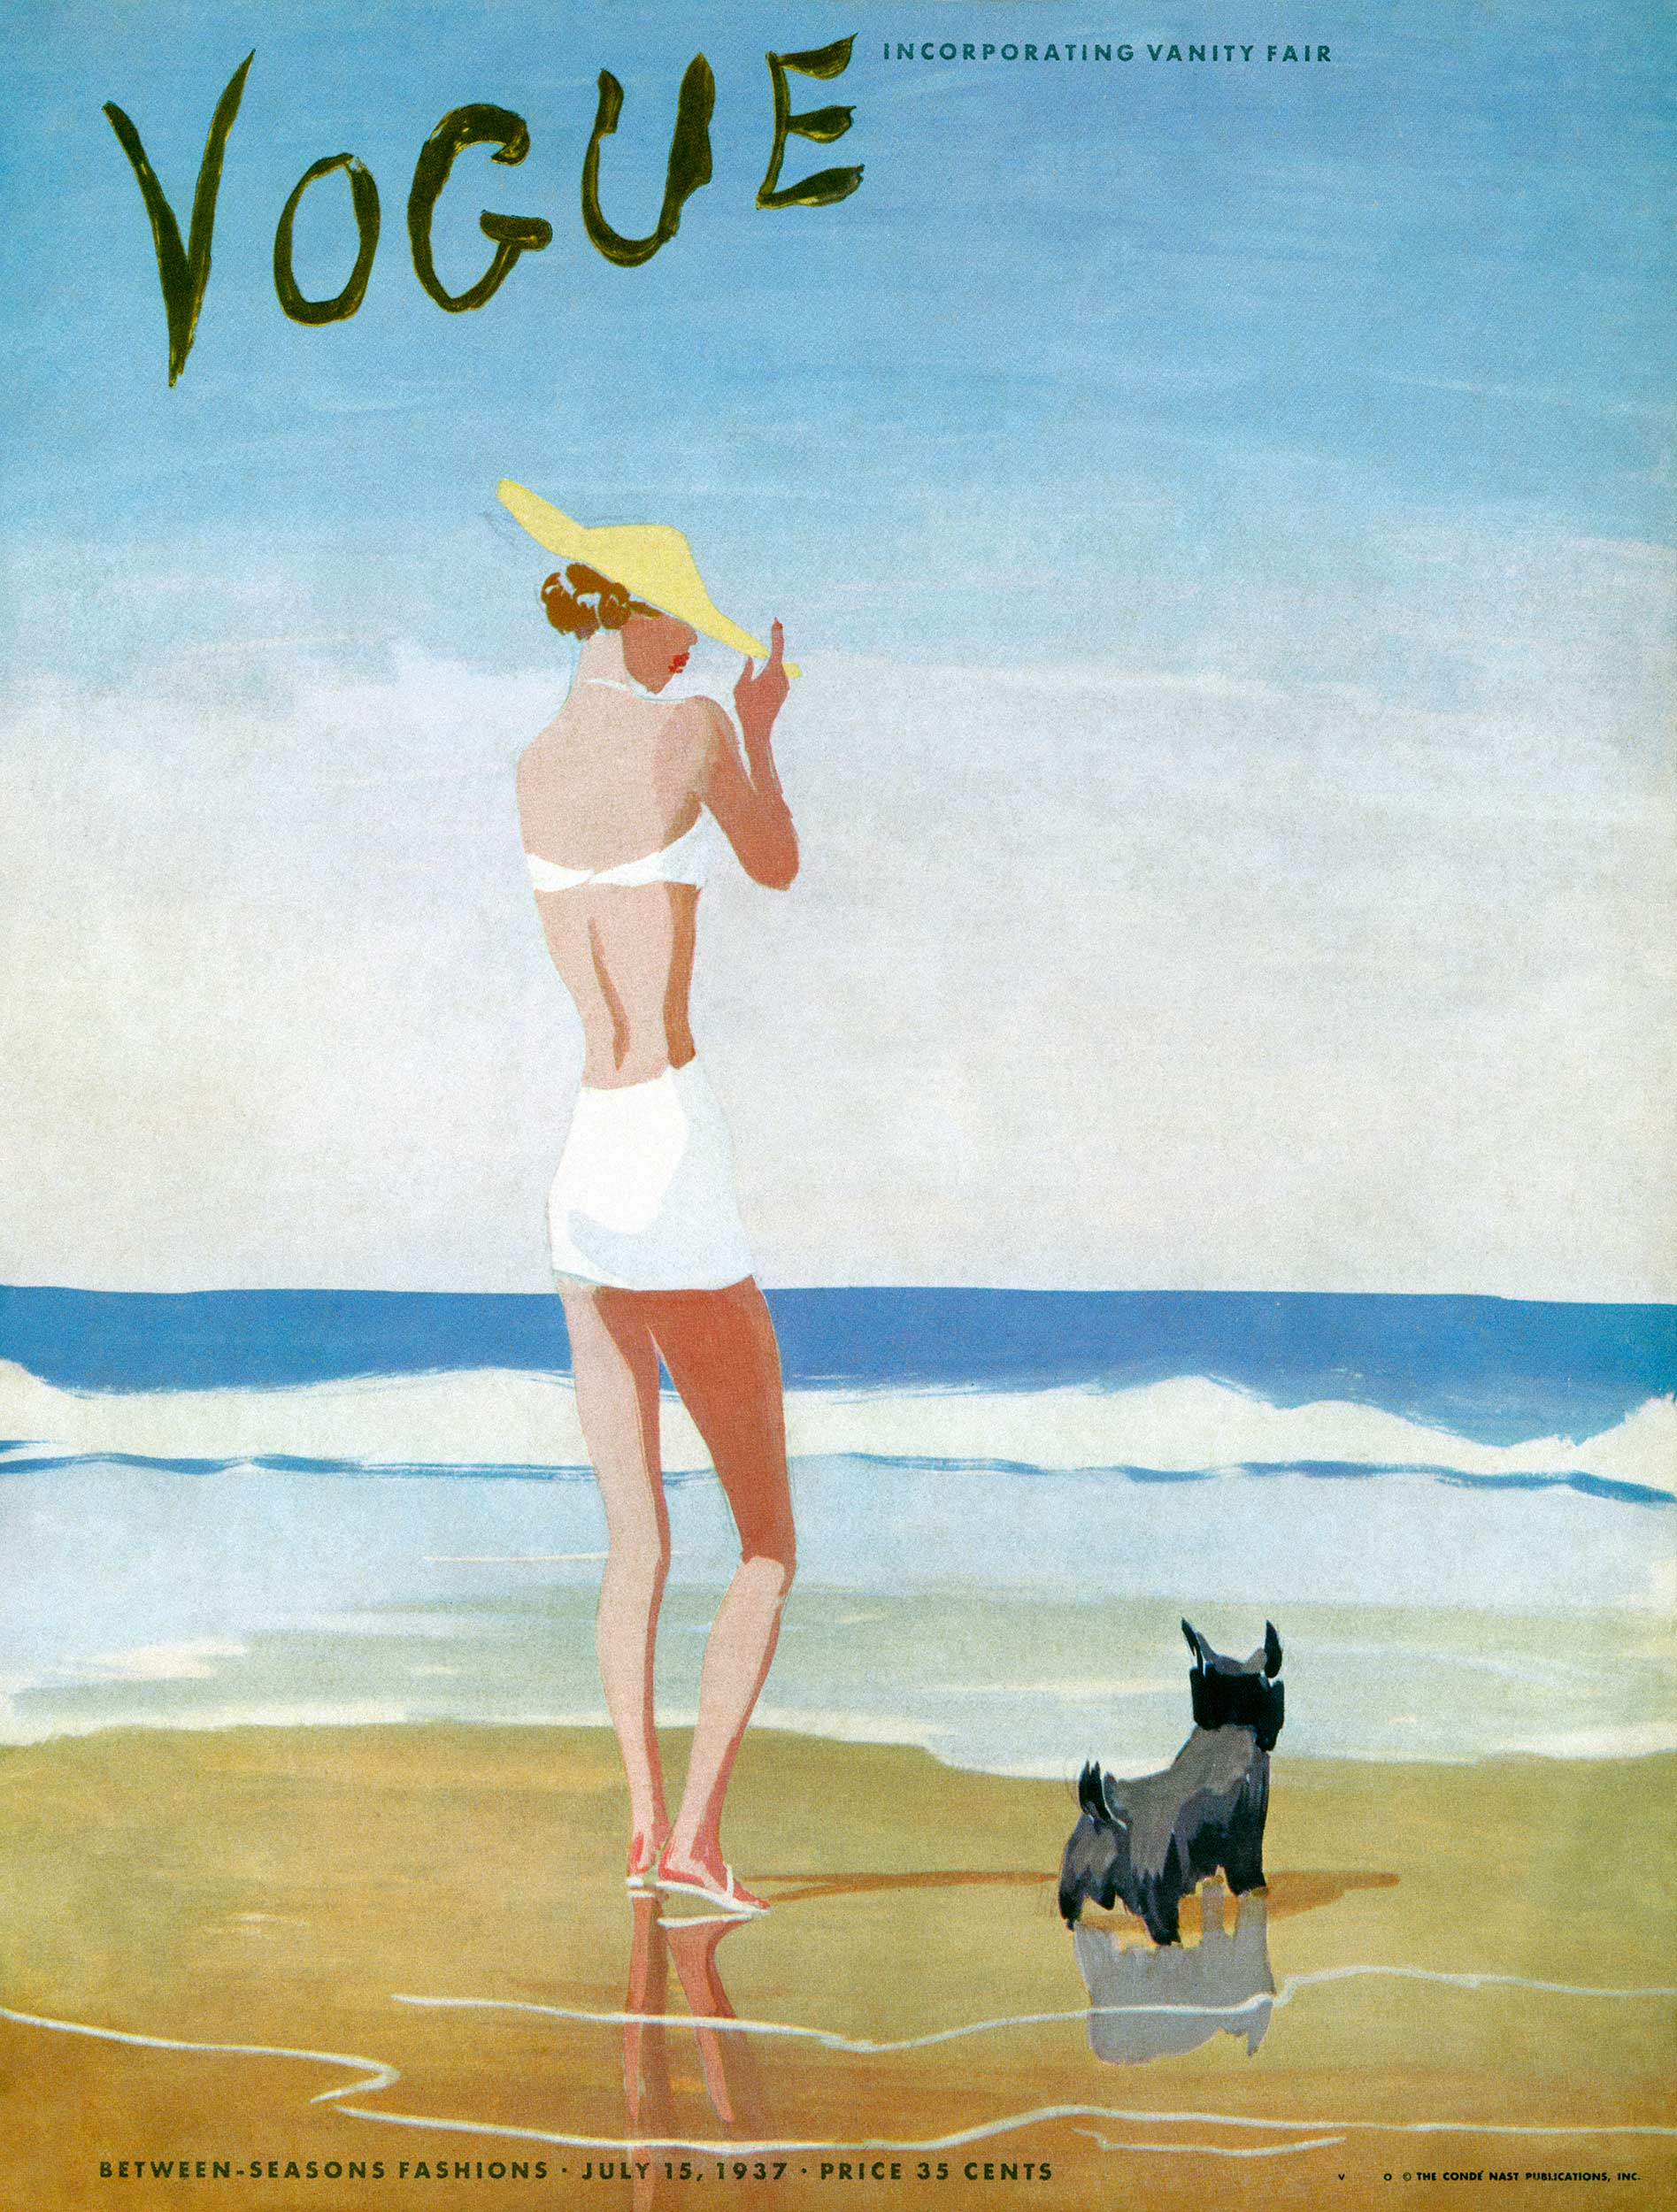 nusa-indah-surfboards-vogue-collection-eduardo-garcia-benito-original-cover.jpg